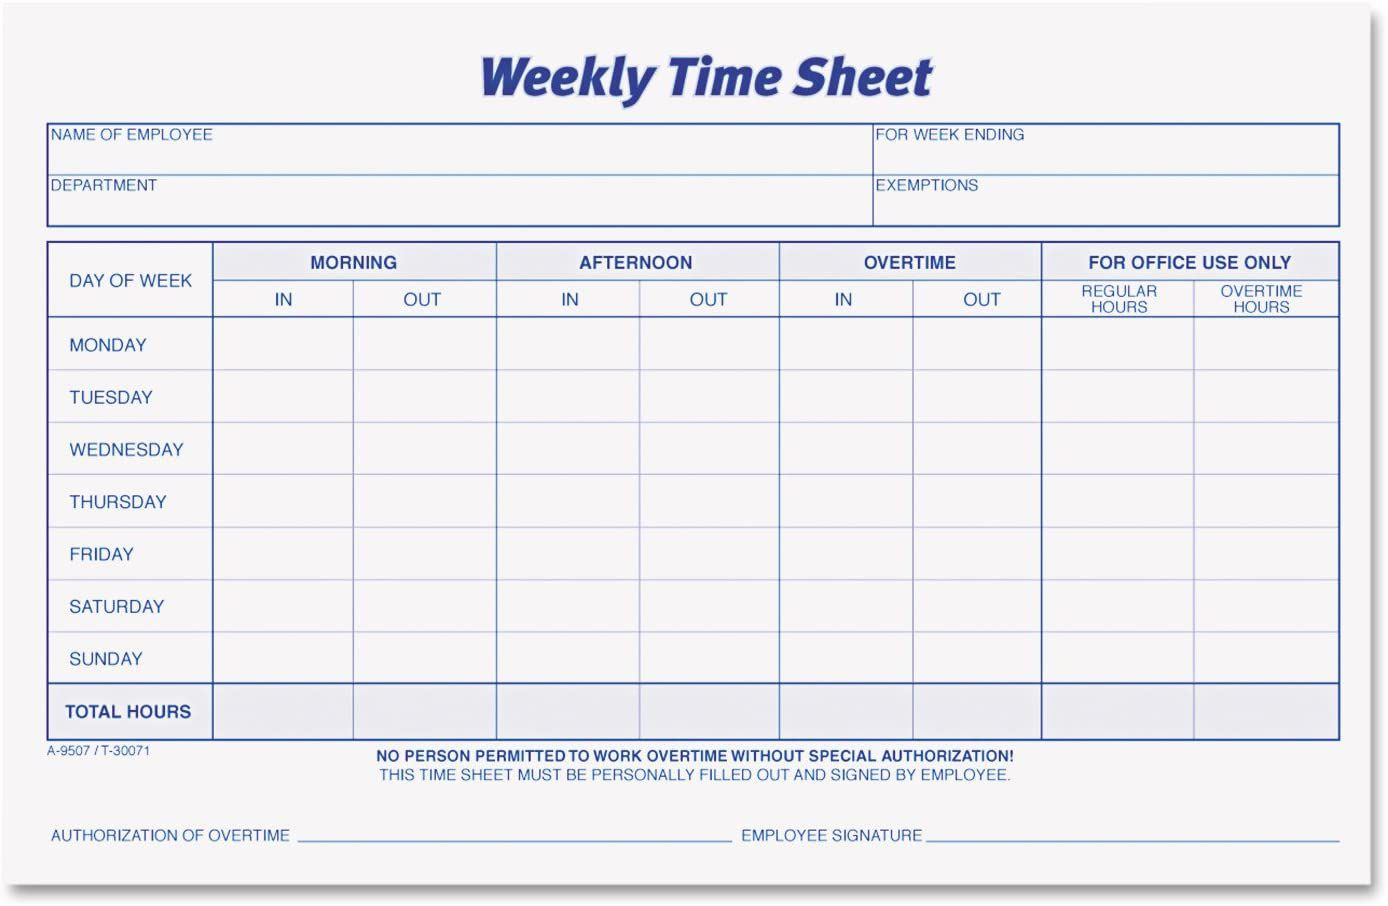 002 Wondrou Employee Time Card Sheet Picture  Template Free ExcelFull